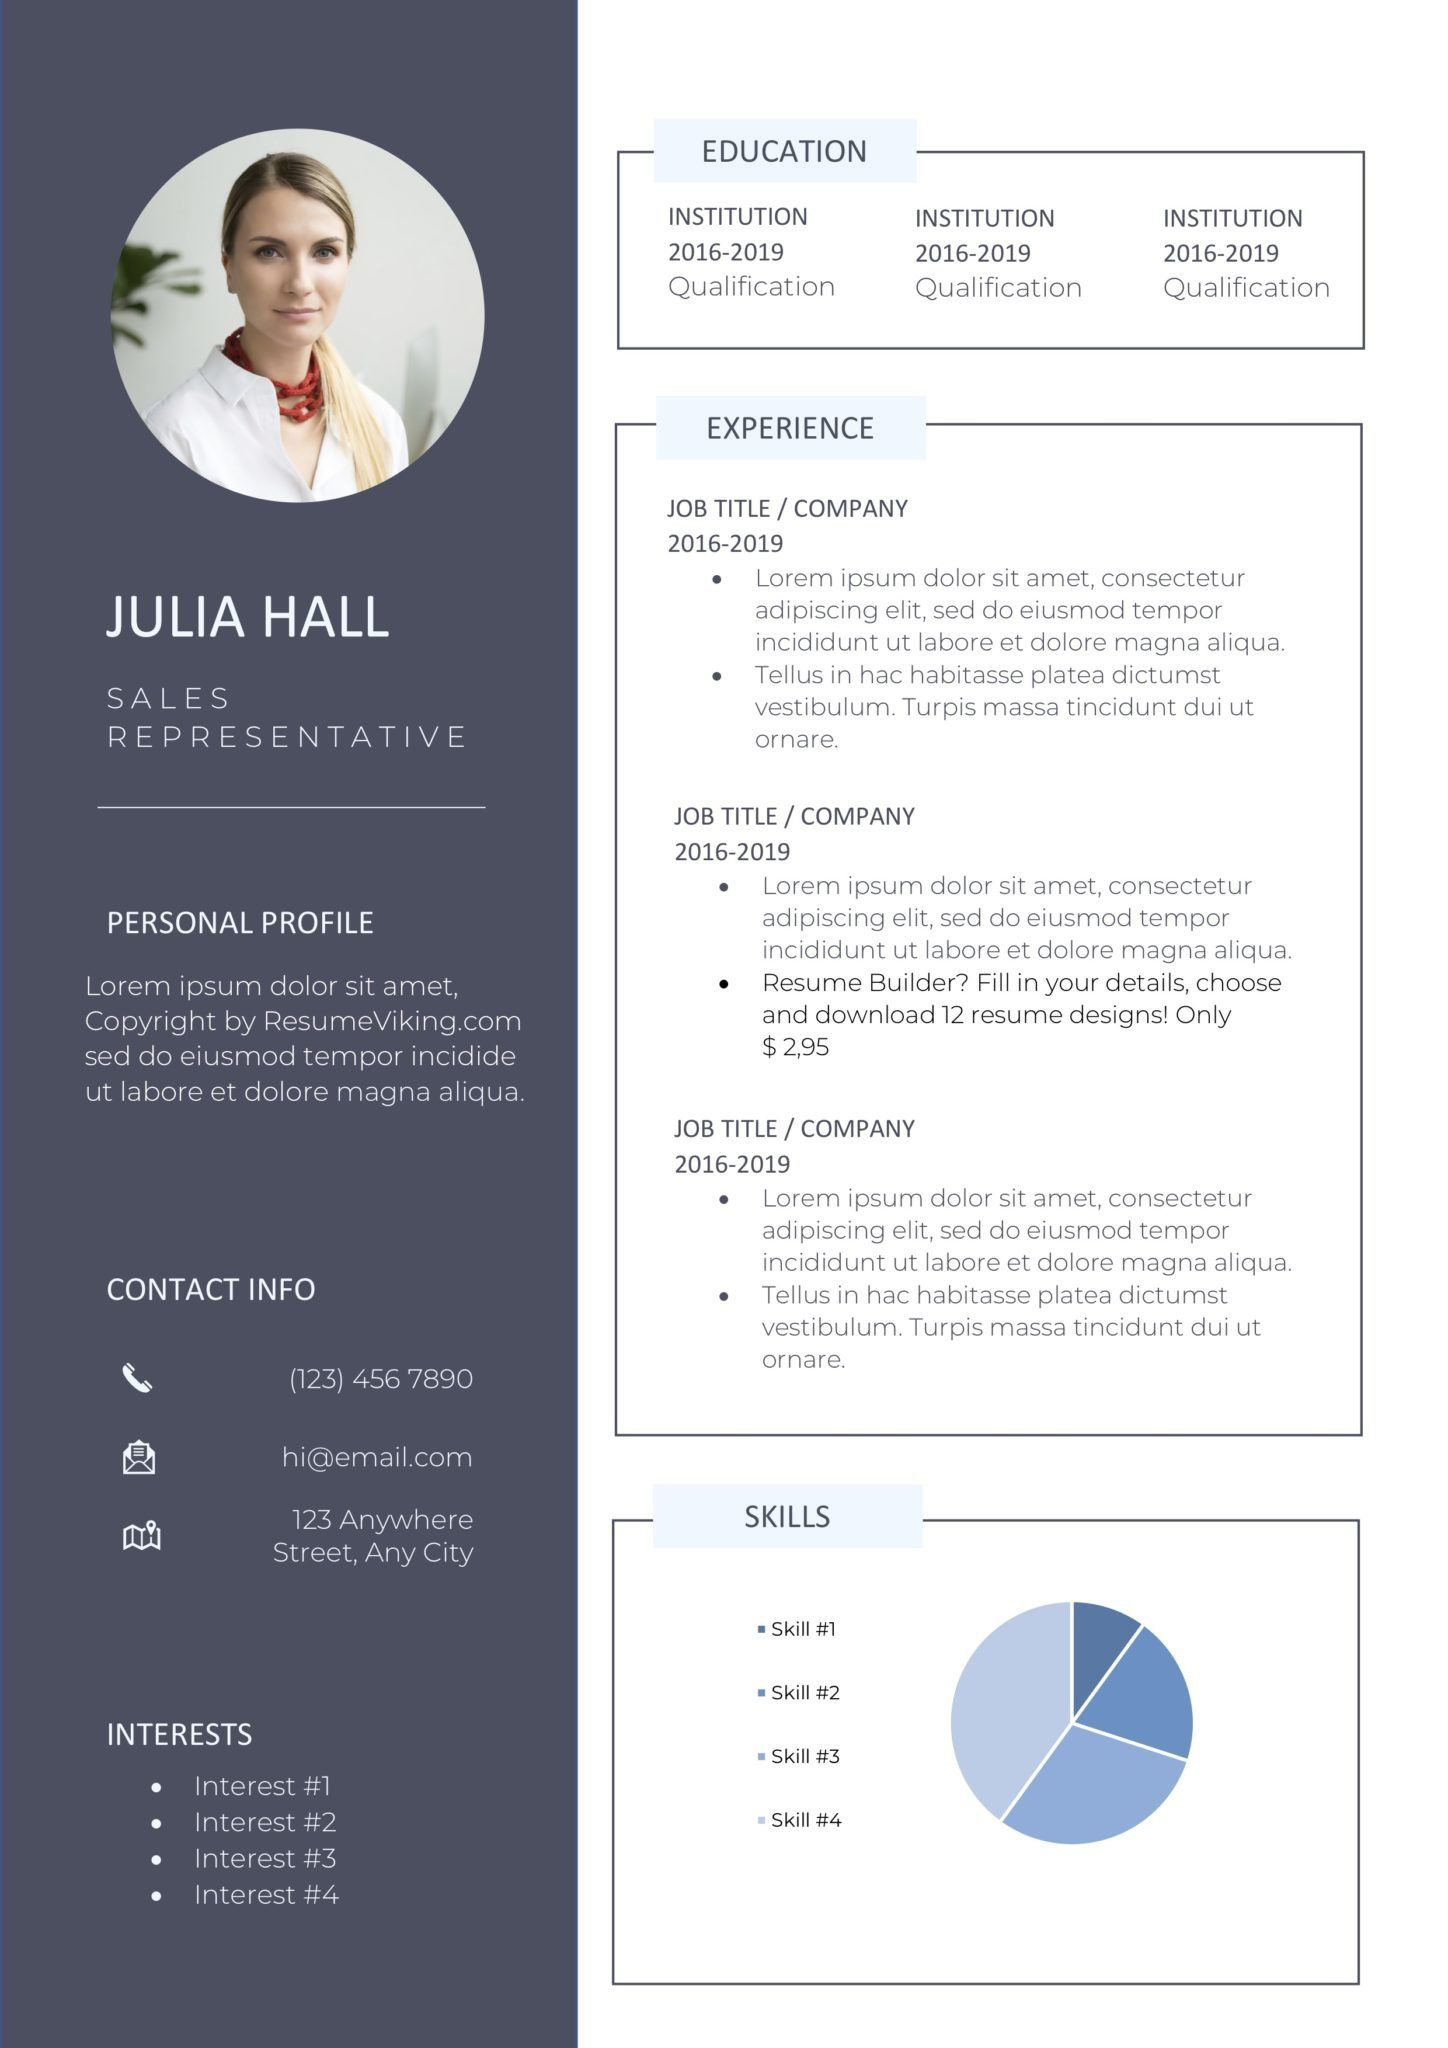 012 Frightening Resume Template Free Word Download Image  Cv With Photo Malaysia AustraliaFull